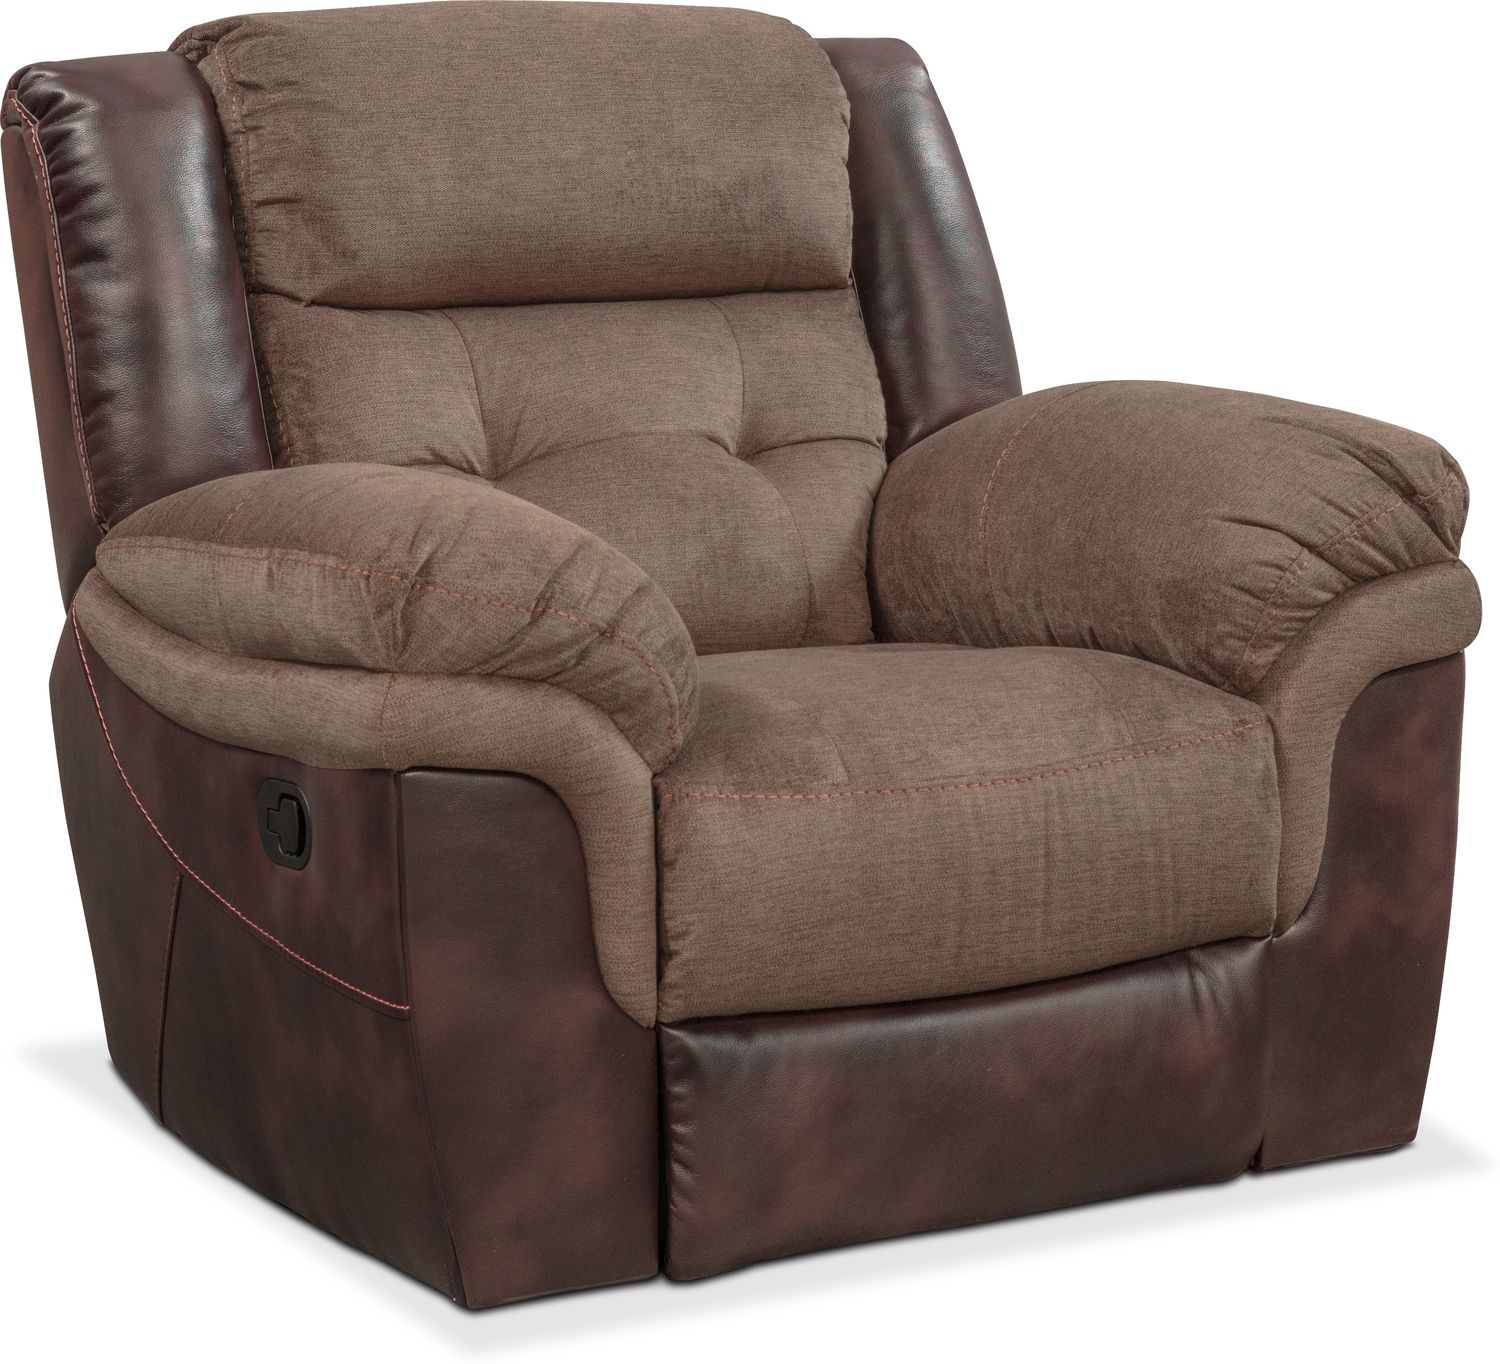 marlow reclining sofa loveseat and chair set side table diy tacoma manual glider recliner